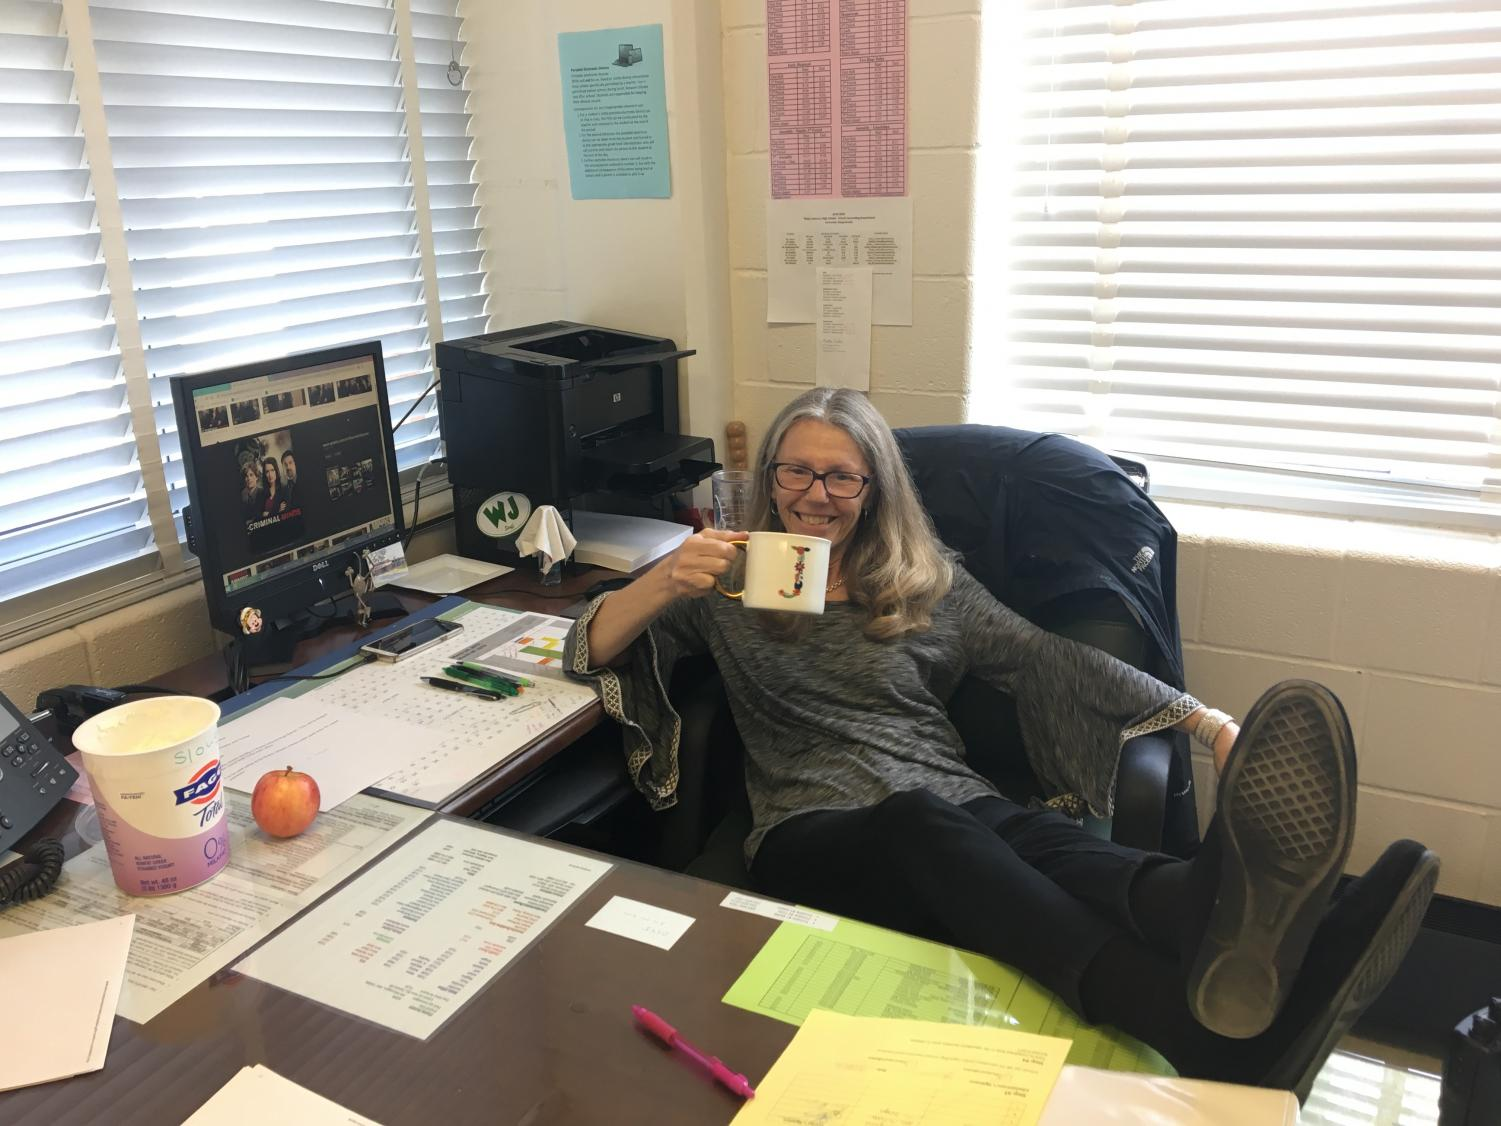 Administrator Janan Slough relaxes behind her desk instead of doing work. She is an avid fan of Criminal Minds and watches four episodes every day.